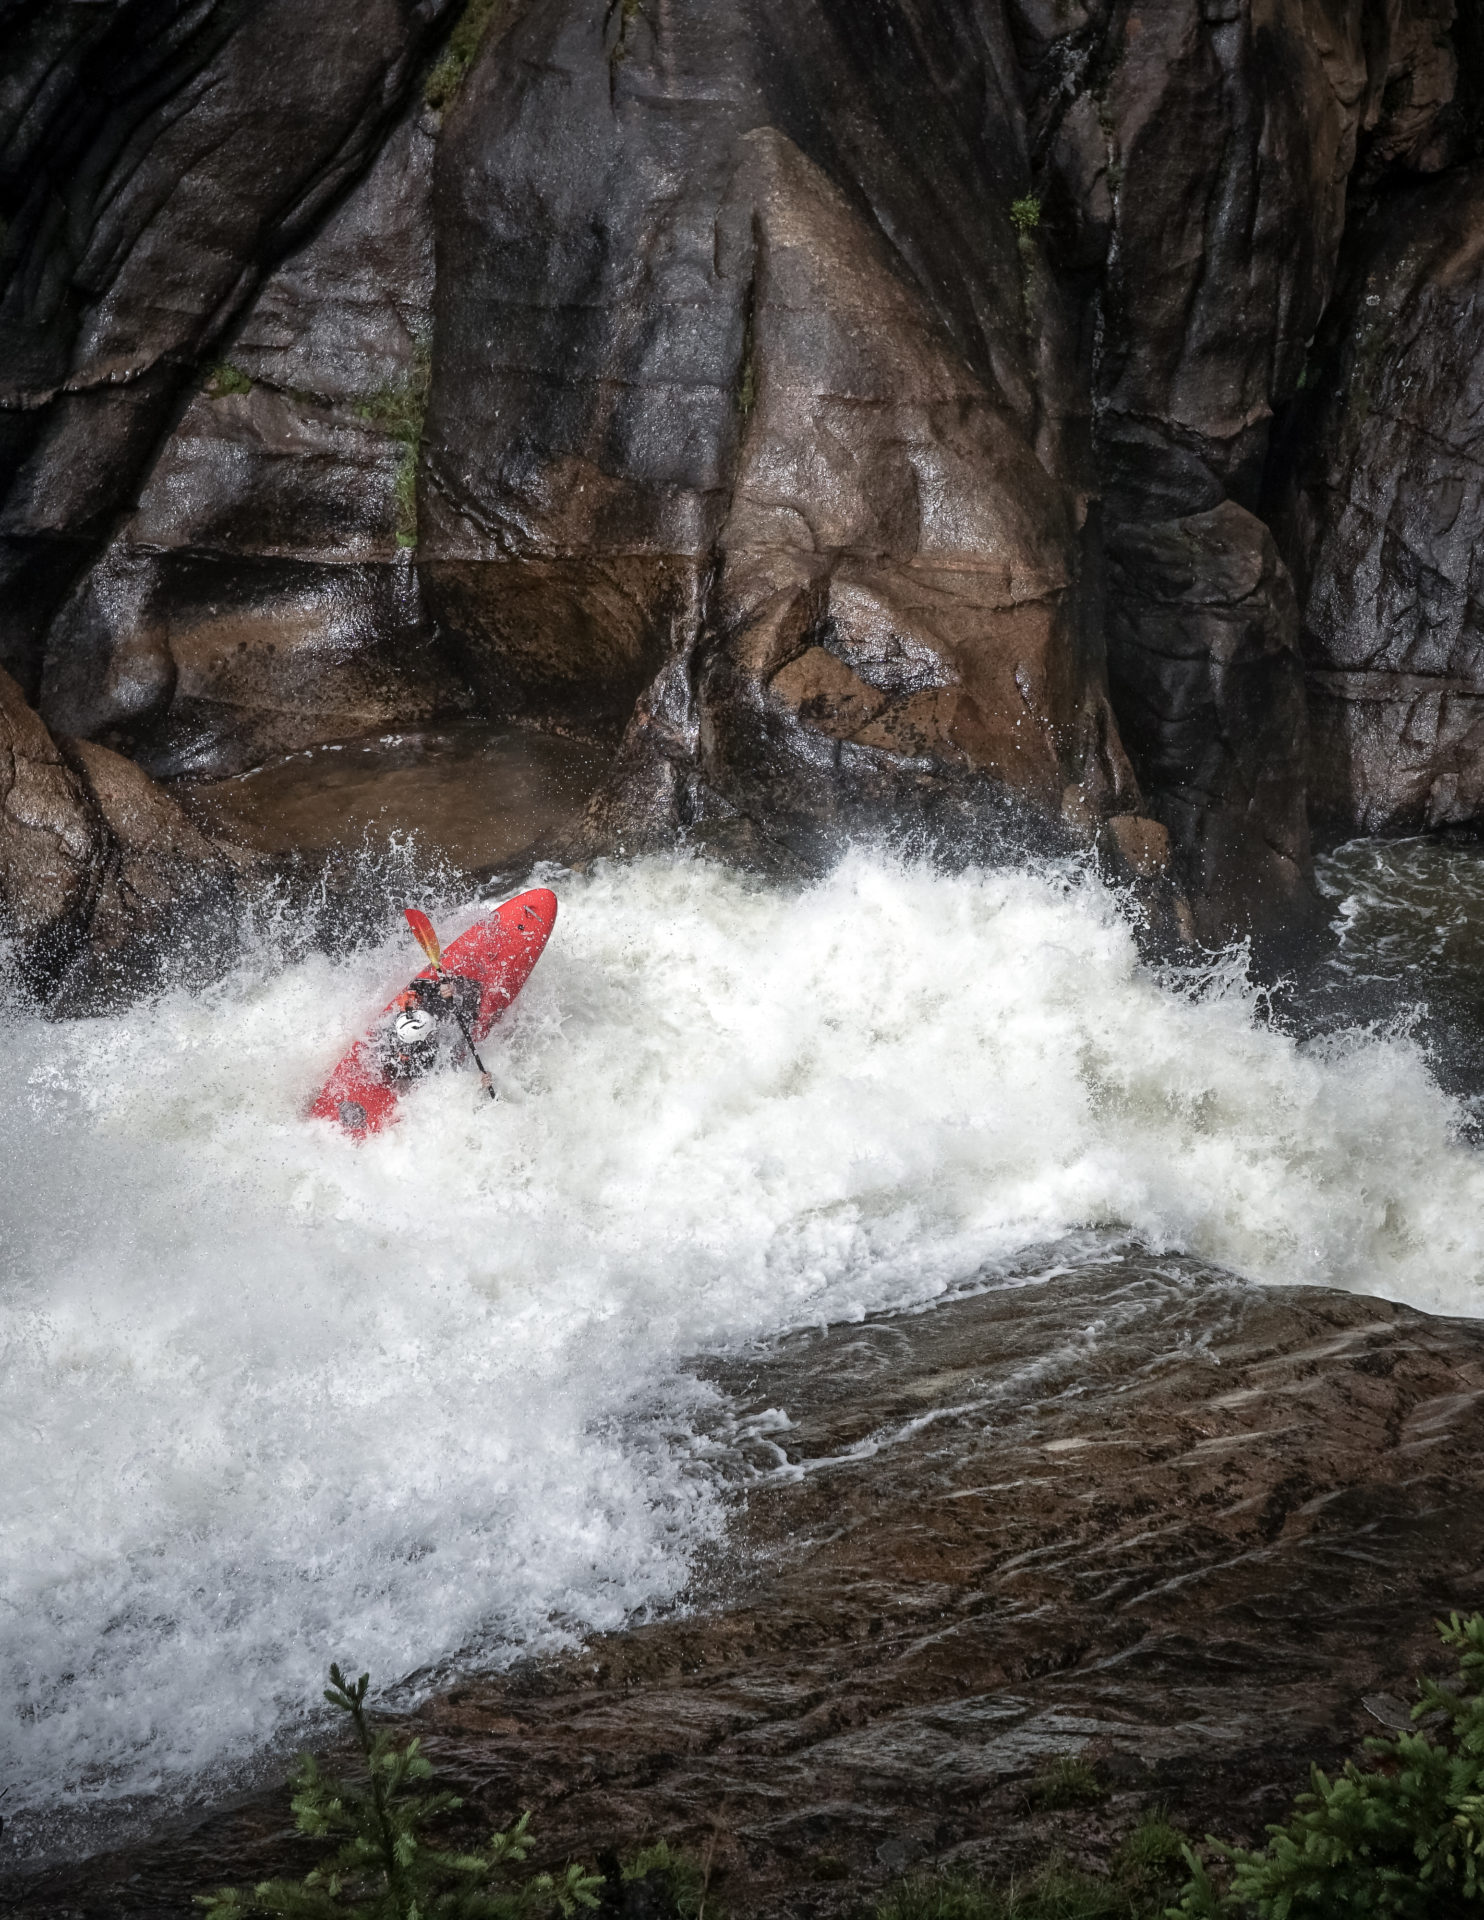 First Descents of Big Goose Creek and the mighty and long sought after Box Canyon of the Tongue River. Over 10 days this past June Erik Boomer, Nouria Newman, and Ben Stookesberry pushed the envelope of steep Rocky Mountain Expedition Kayaking in the Big Horn Mountains of Wyoming with first descents of two of the Ranges largest drainages in Big Goose Creek and the mighty and long sought after Box Canyon of the Tongue River. In both cases the team packed for multiple nights on extremely steep rivers Isolated by Canyon Walls in this eastern most front of the Rocky Mountains. Although there was some portaging what was most impressive was the nearly 6000 vertical feet of gradient that they paddled including monster slides and falls.   These rivers existing right under the noses of several generations of paddling crews in the western USA further exhibits the audacity and high level of kayaking required to make these descents. In contrast to other rivers that our unexplored do to their remoteness and inaccessibility, these rivers with roads literally leading to their put-ins have begged the question for decades that only now has been answered by a crew calling themselves #teampicnic